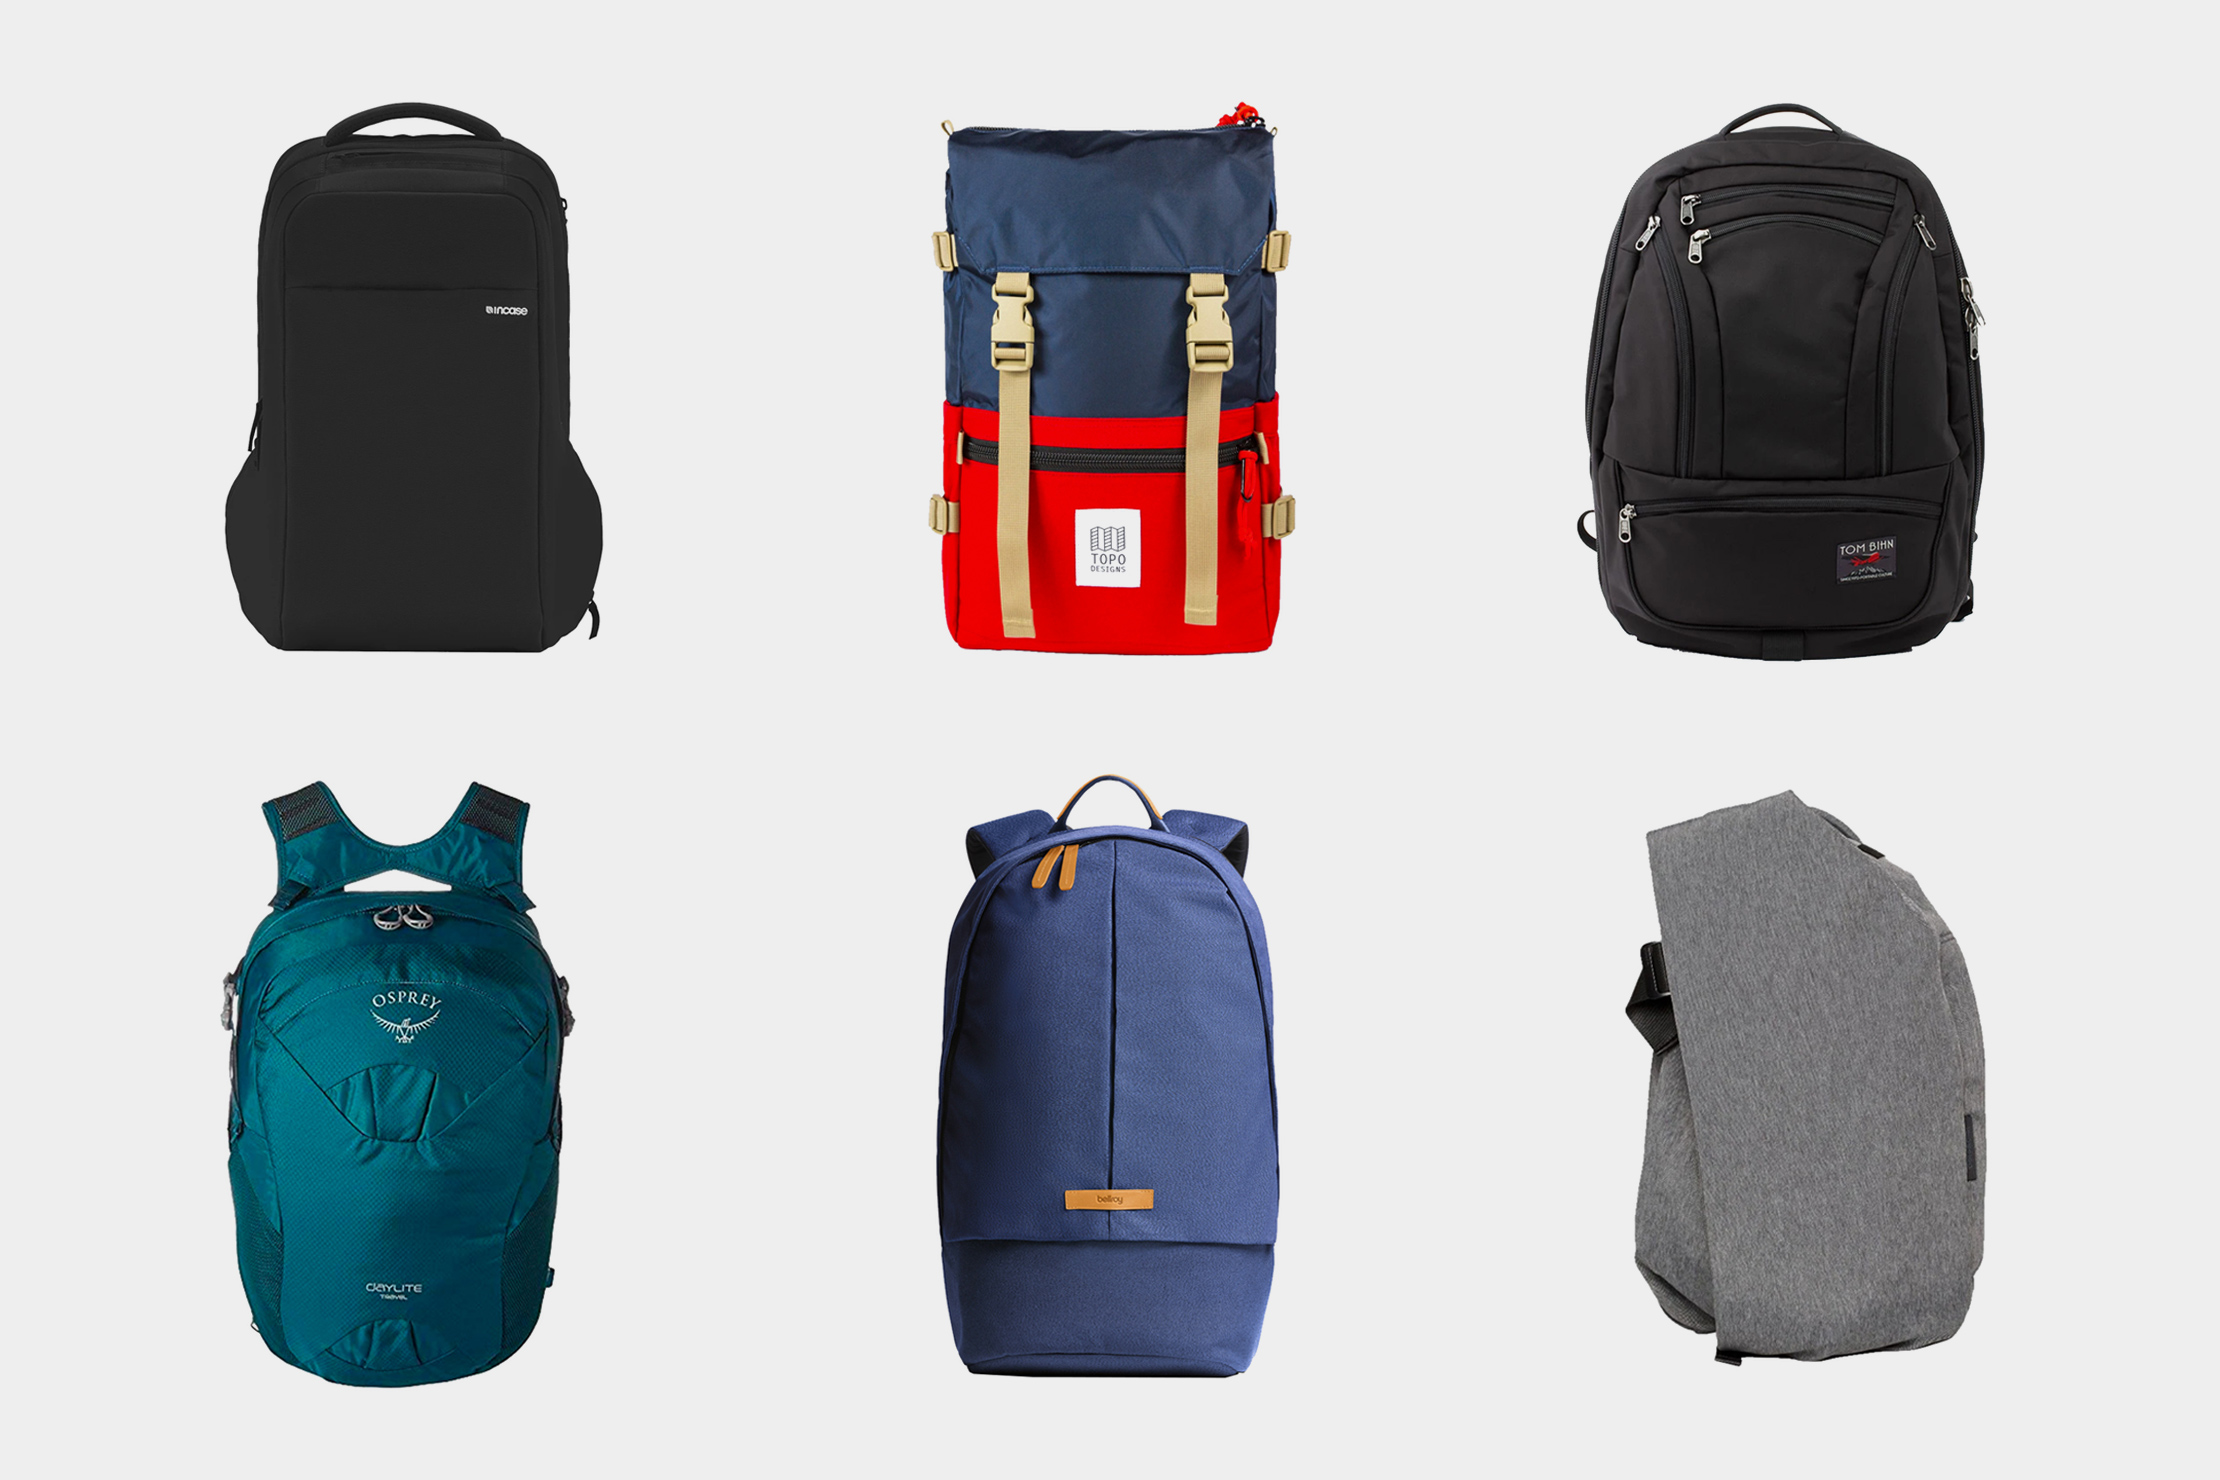 Laptop Bag Styles